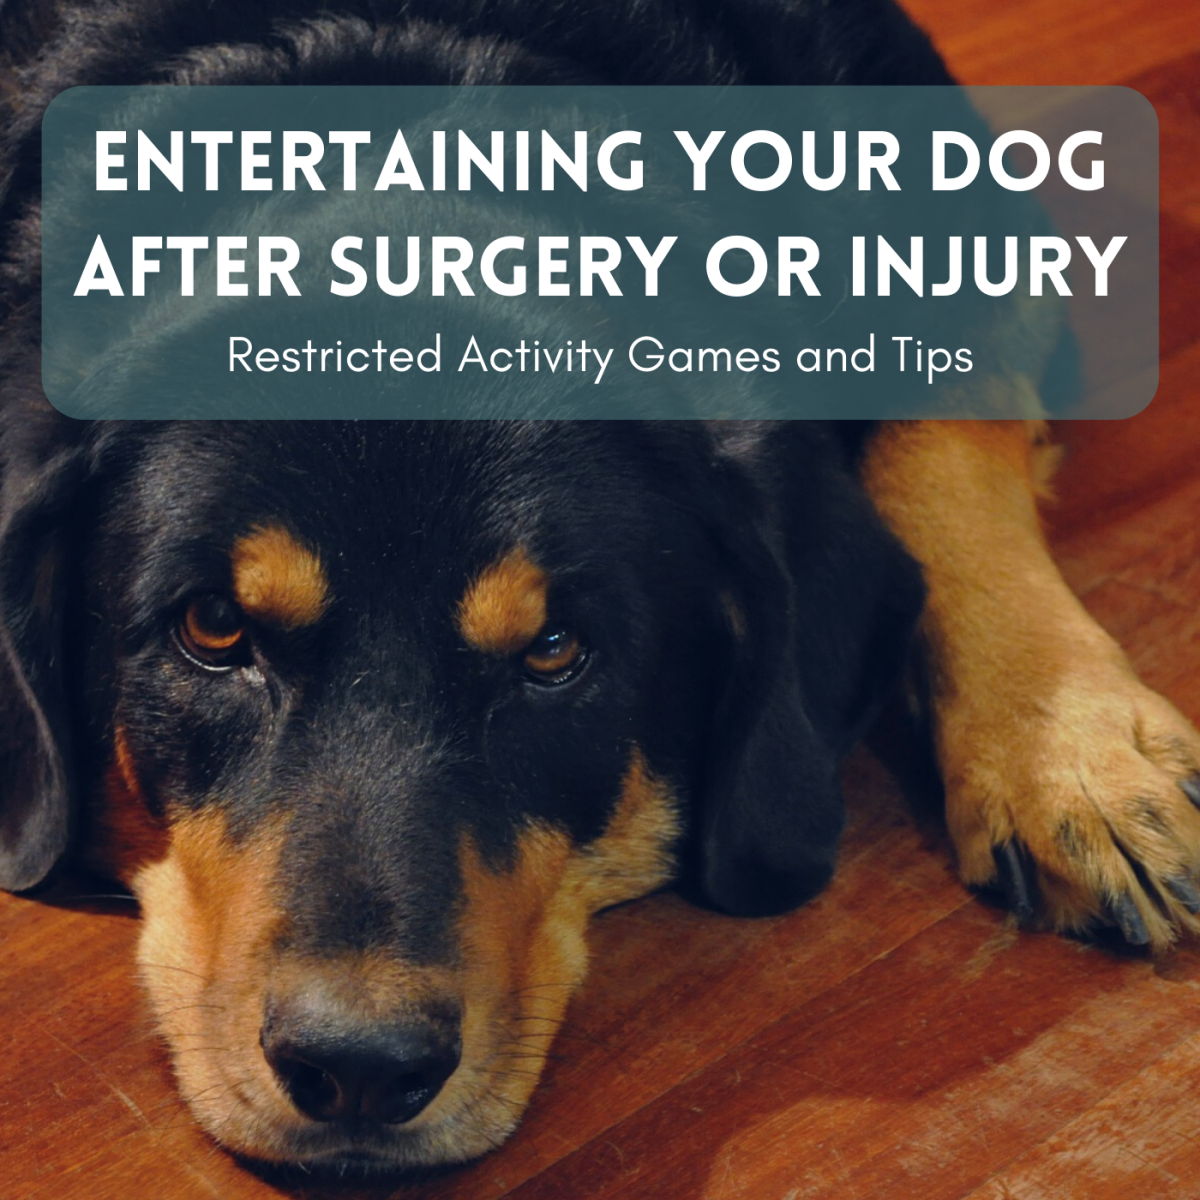 Get ideas for how to keep your pup occupied while they're recovering from surgery or an injury.